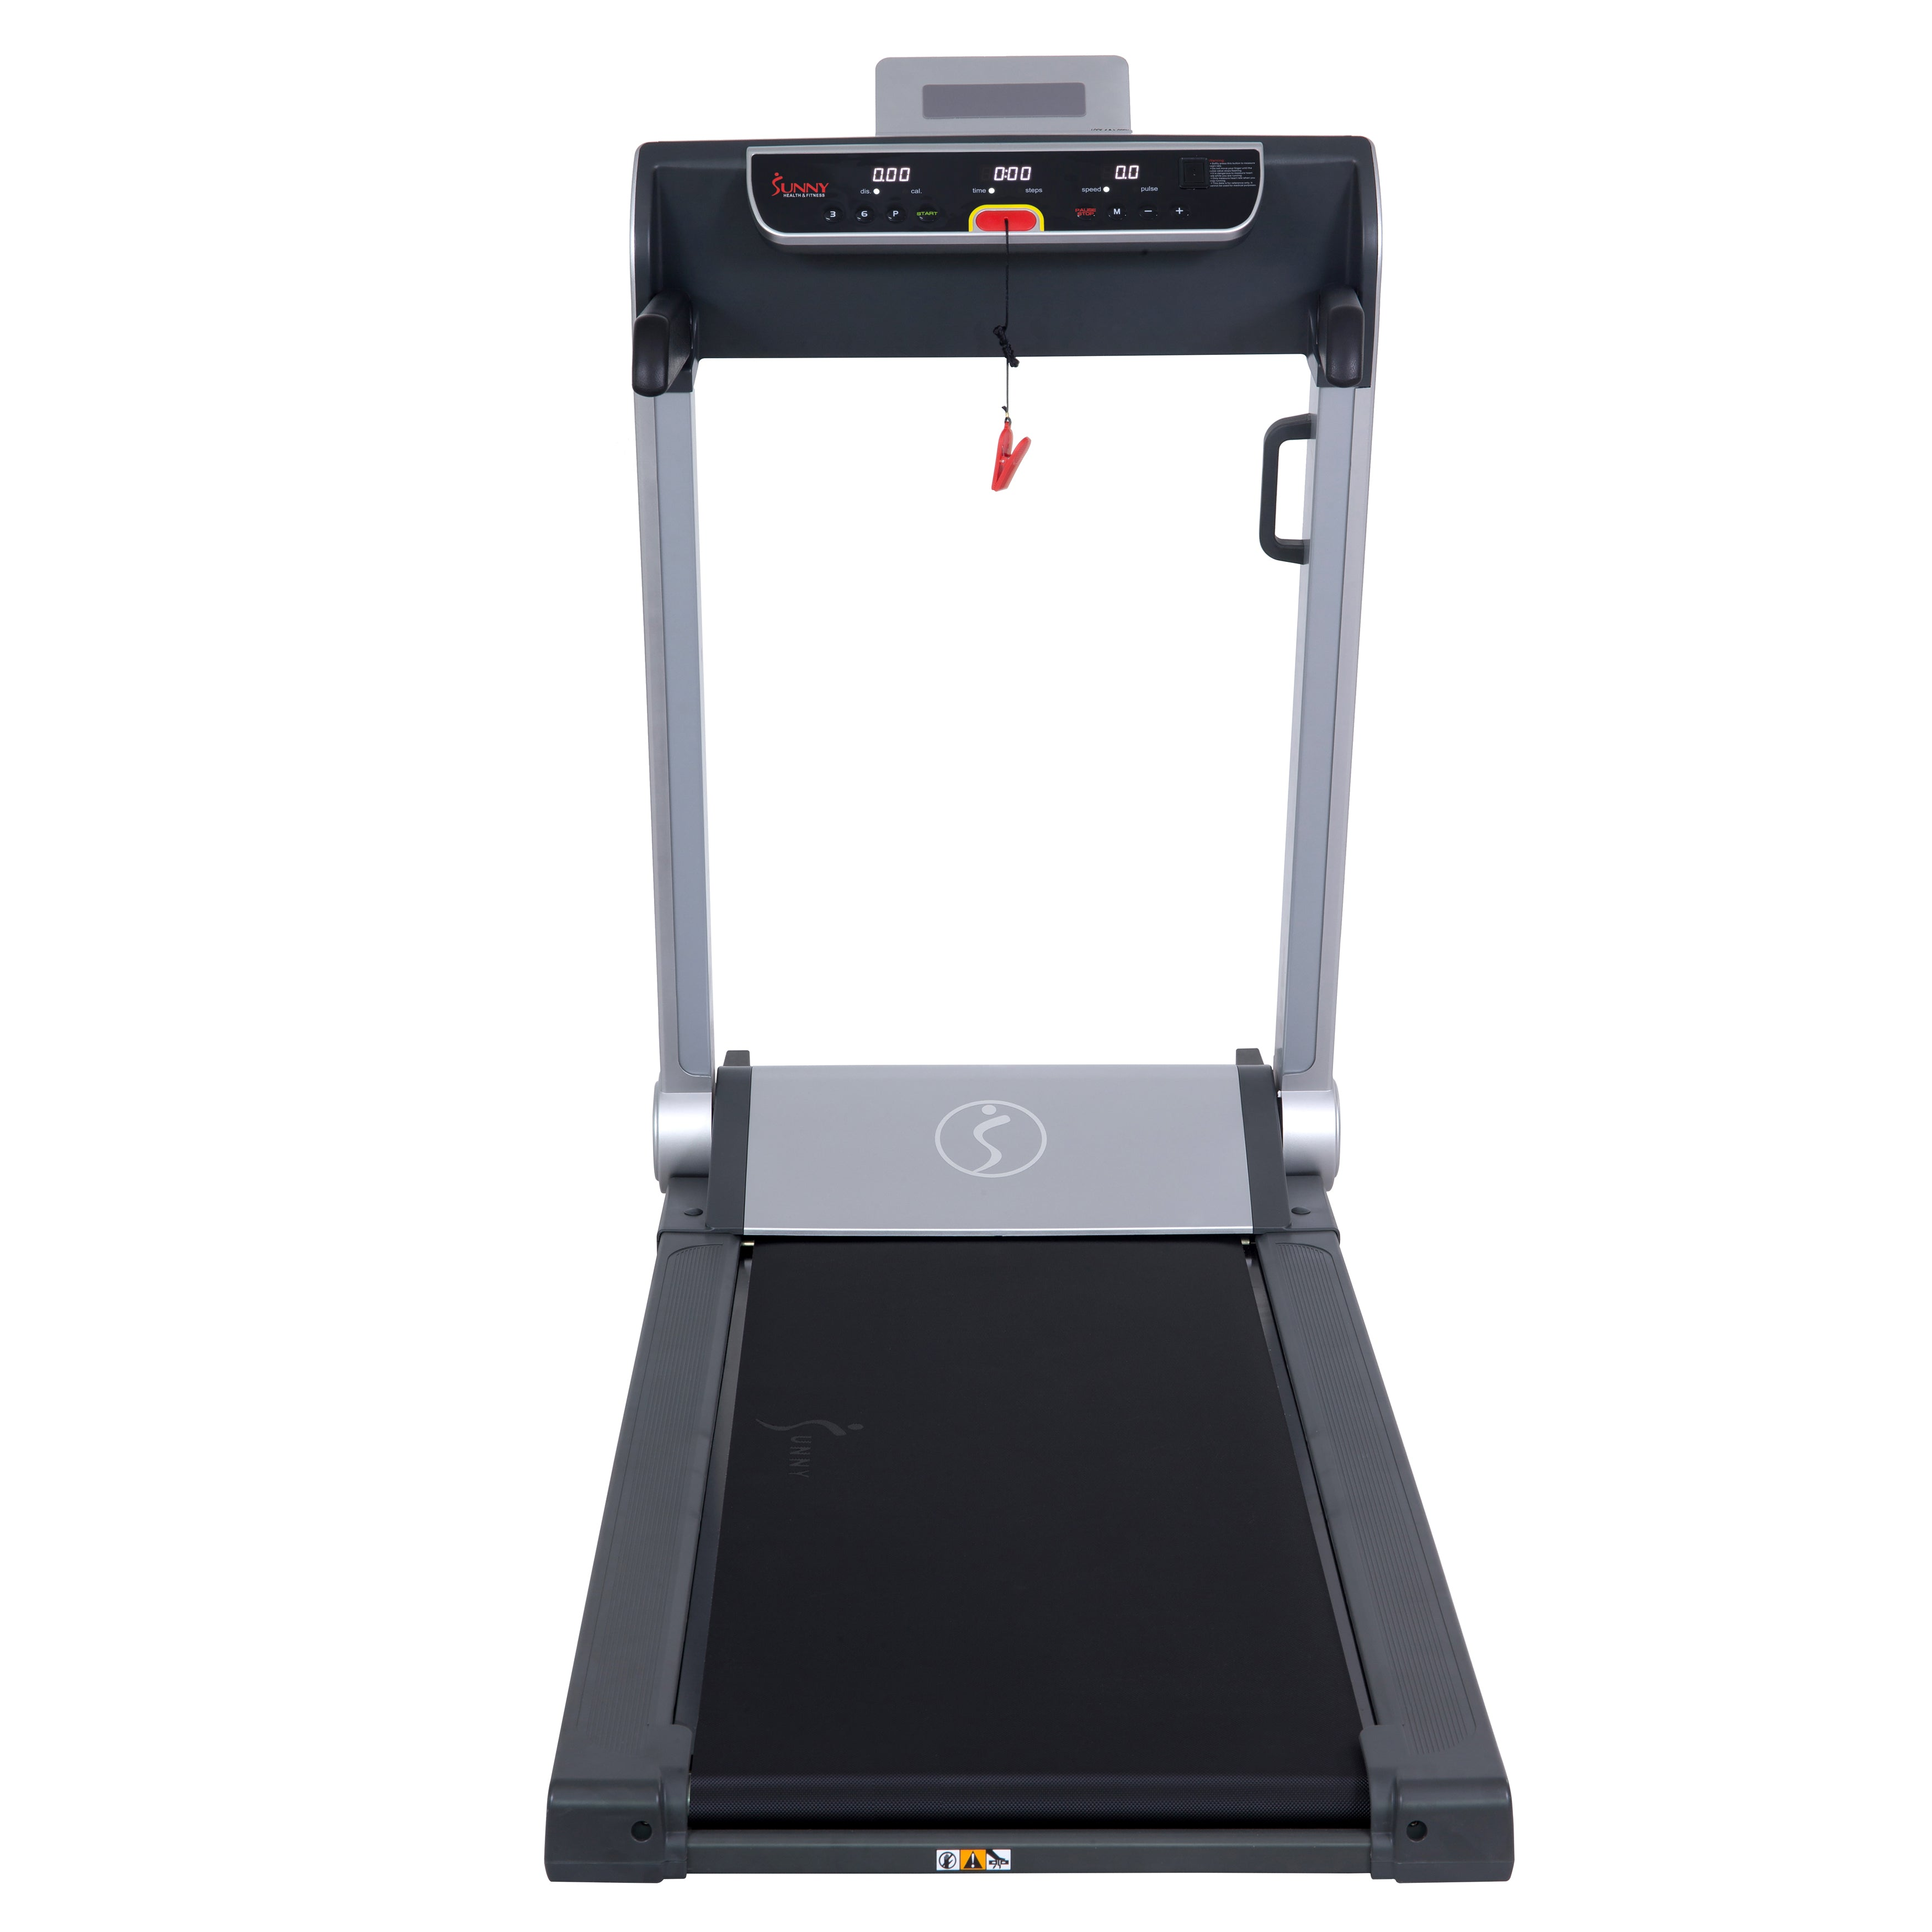 sunny-health-fitness-treadmills-running-treadmill-20-wide-belt-flat-folding-low-pro-portability-speakers-USB-SF-T7718-tread-deck